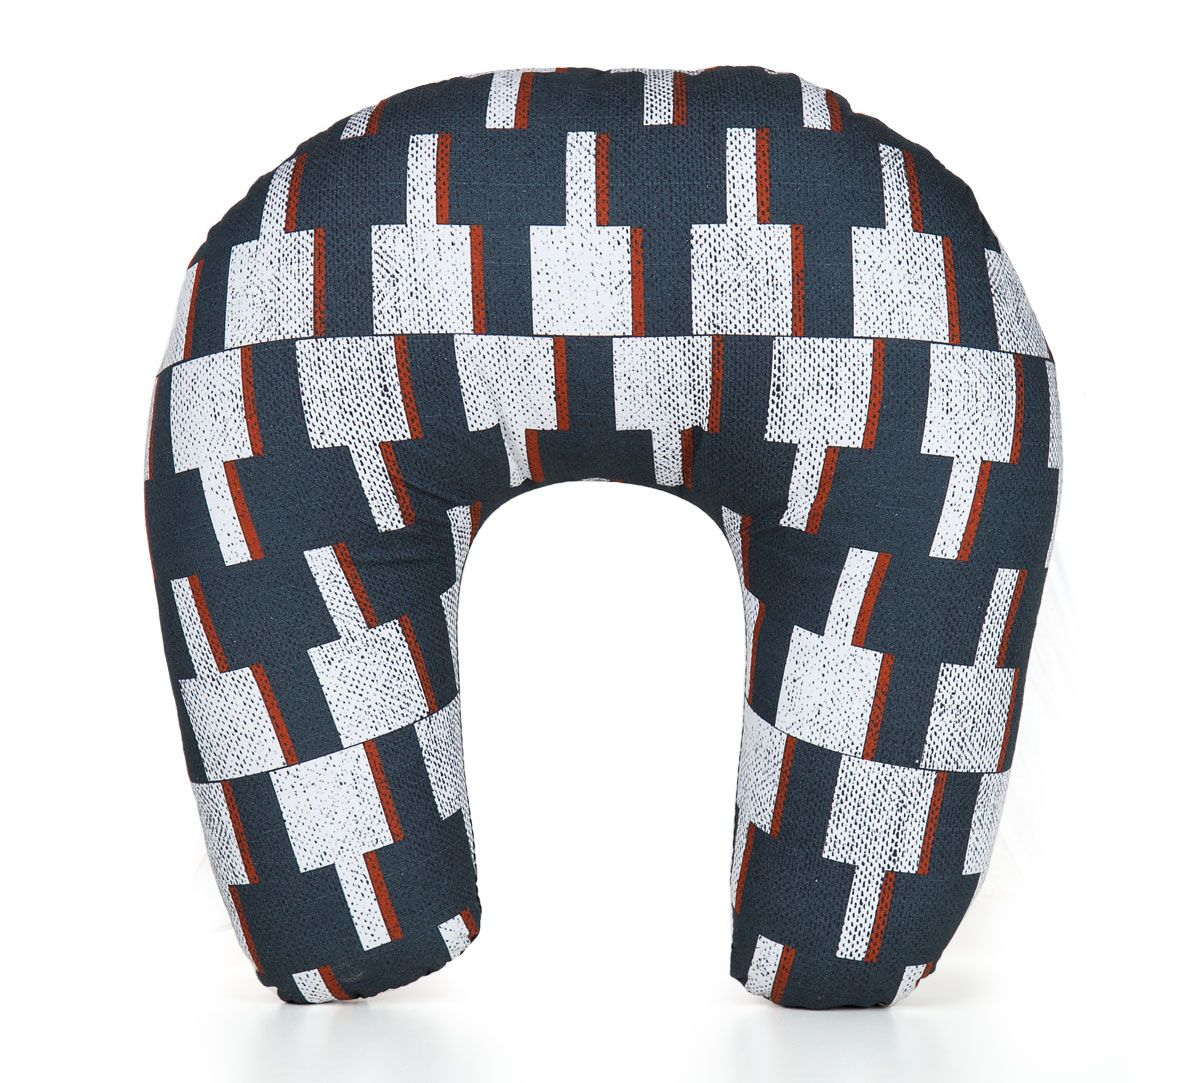 Stylish Travel Accessories - Neck Pillow